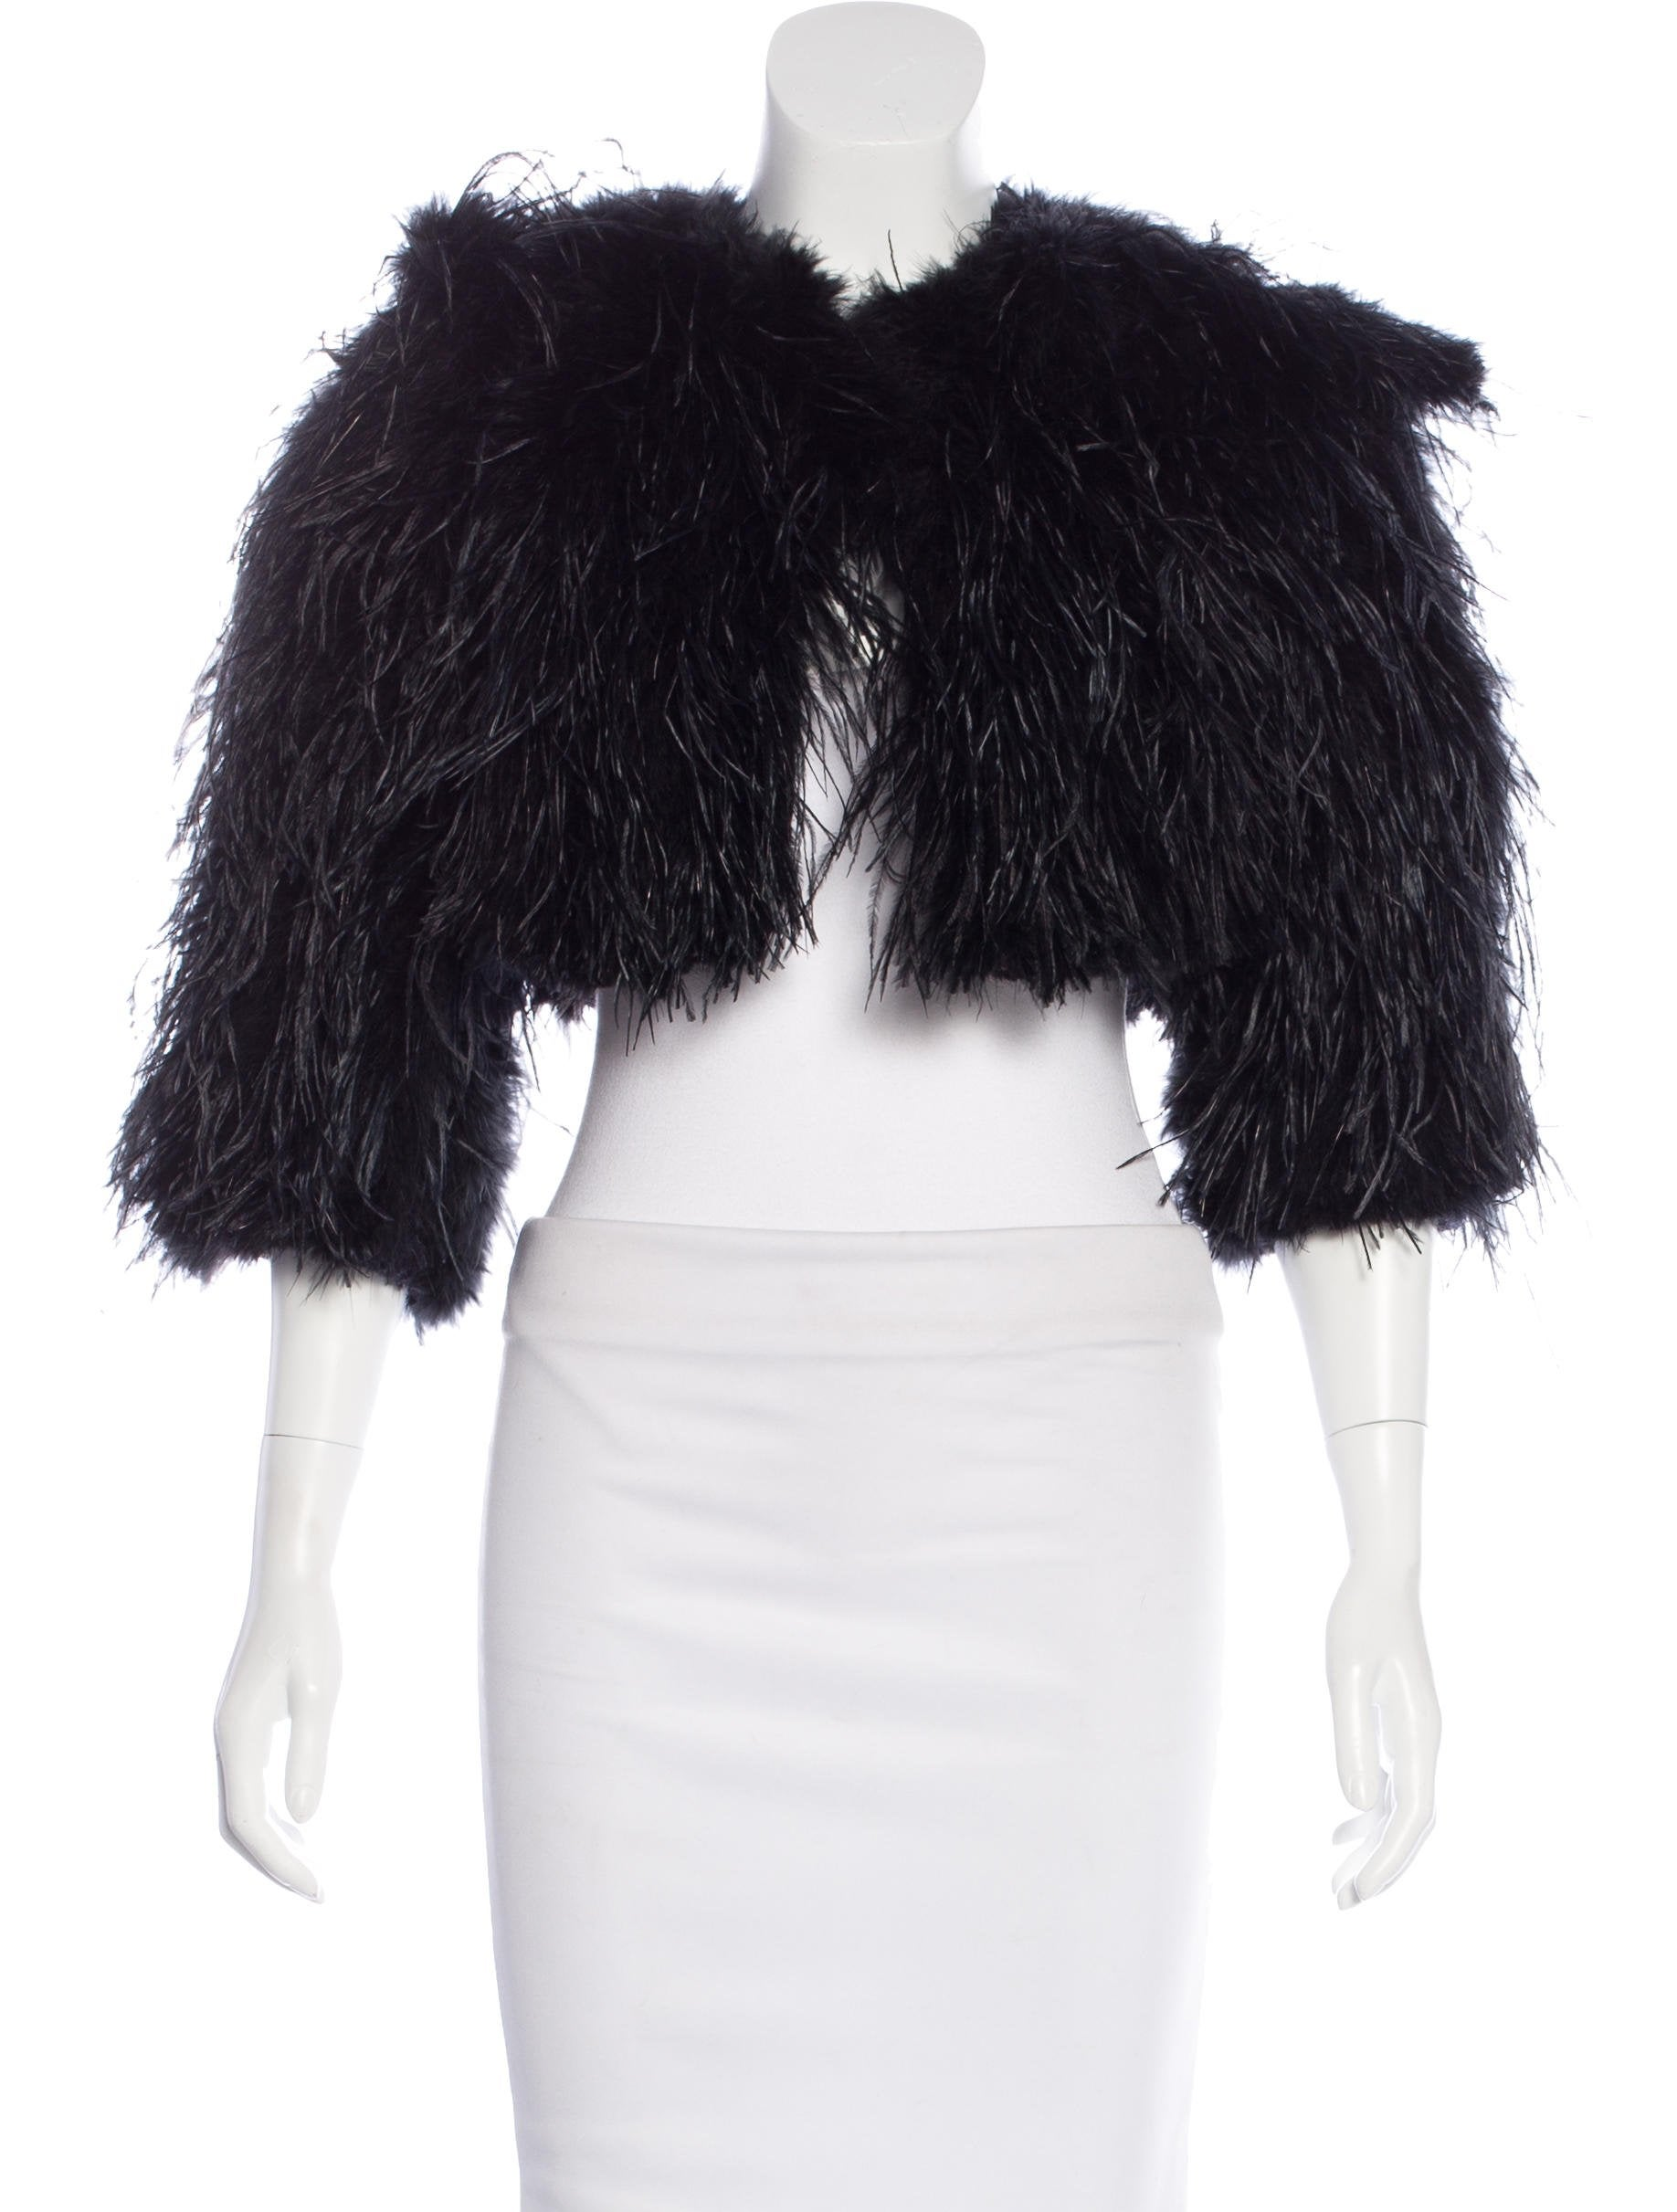 Fur Ostrich Feather Bolero Clothing Fur21952 The Realreal